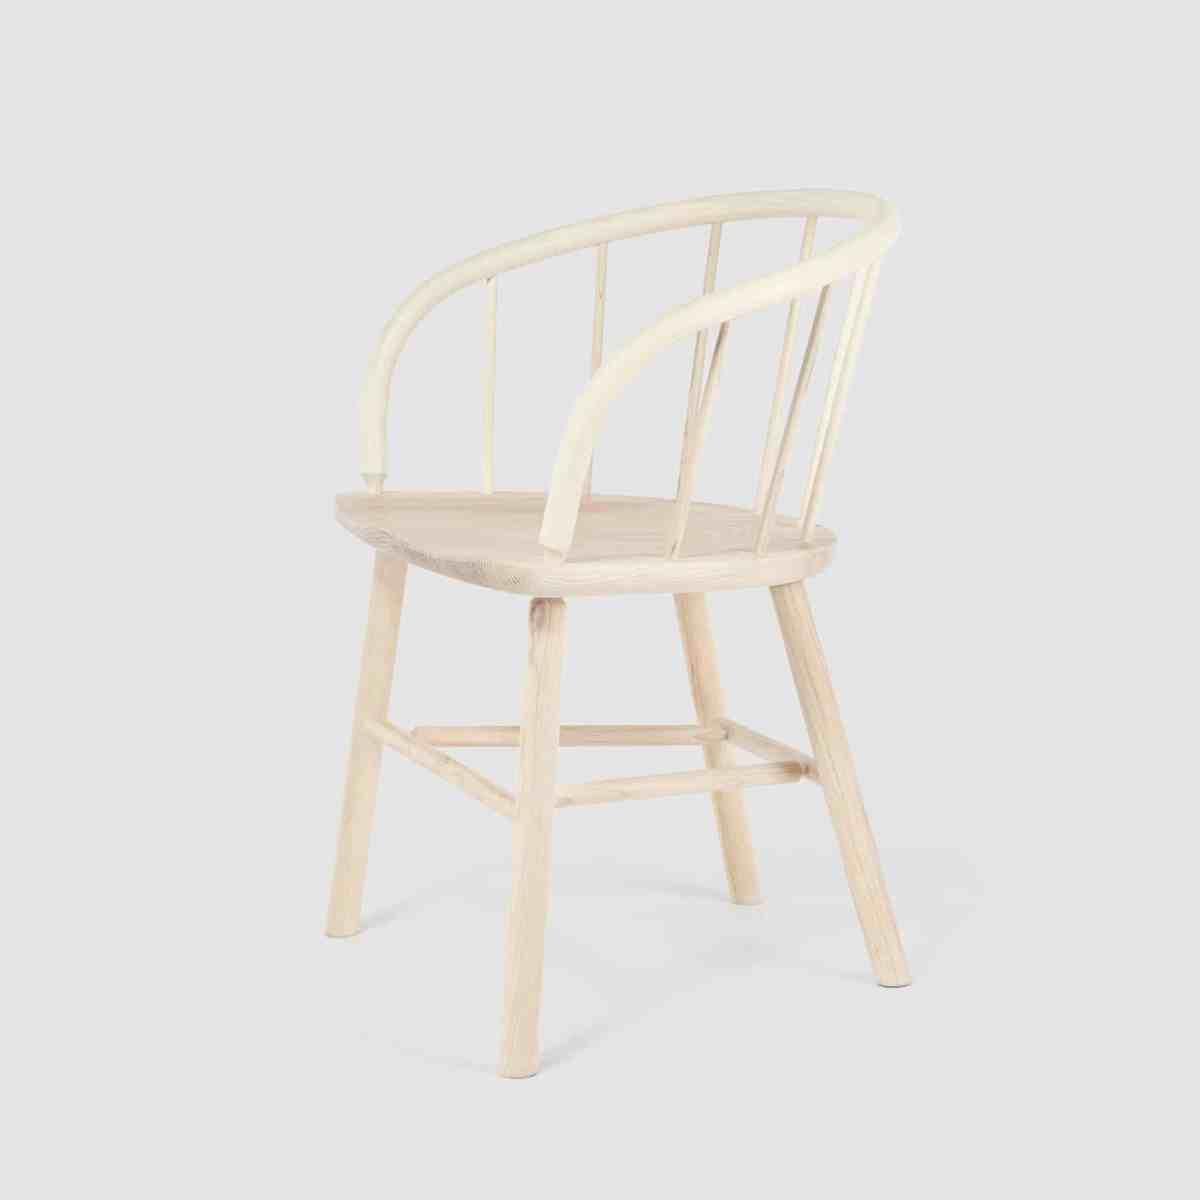 dorset-series-one-hardy-chair-ash-another-country-003